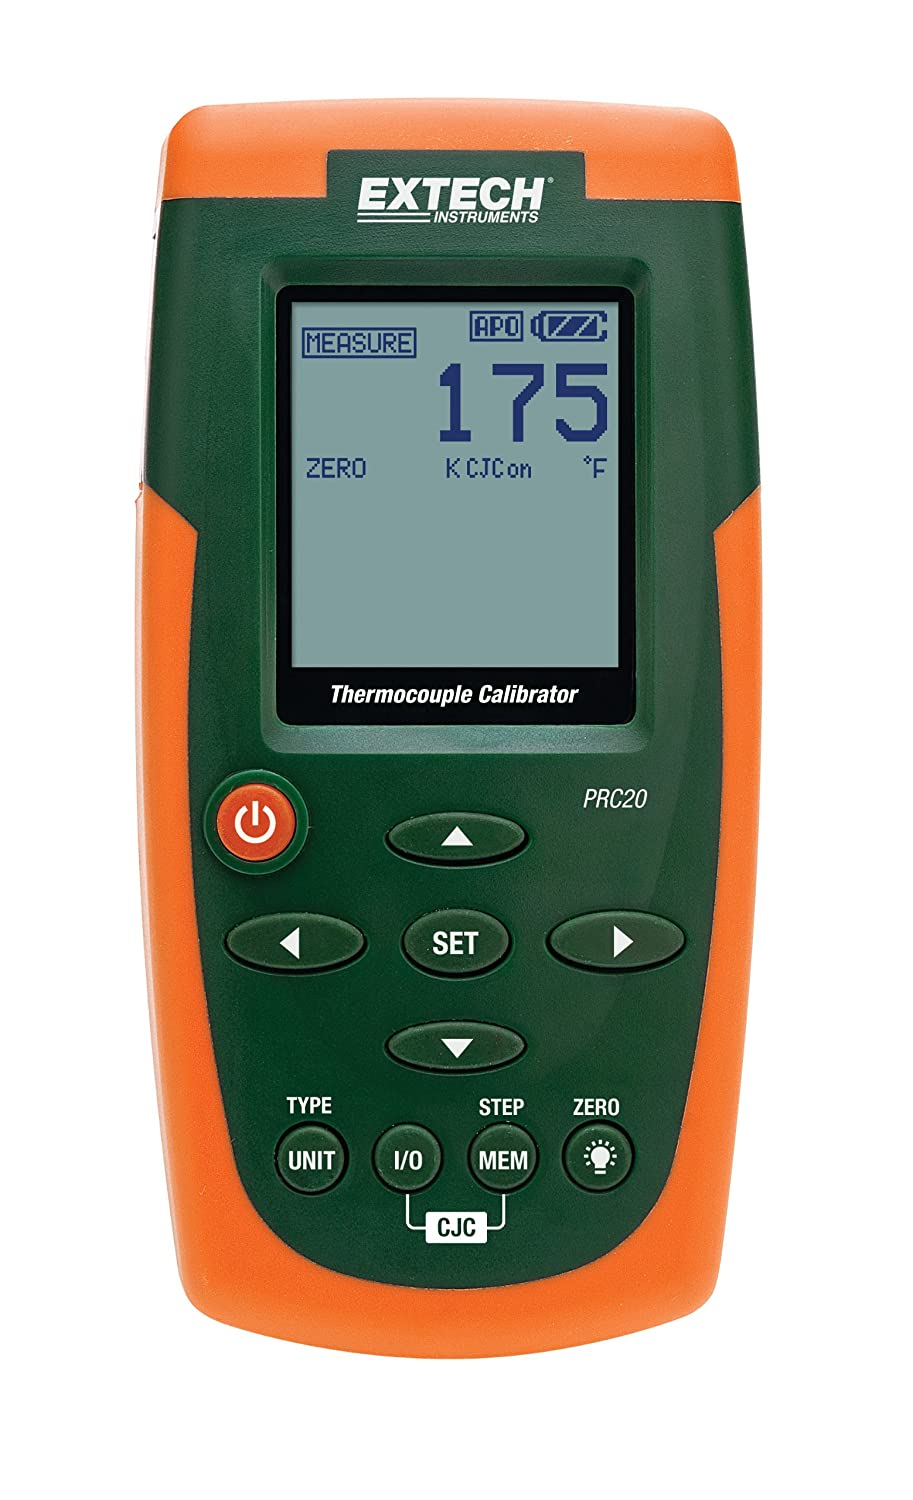 Extech PRC20 Thermocouple Calibrator and Meter